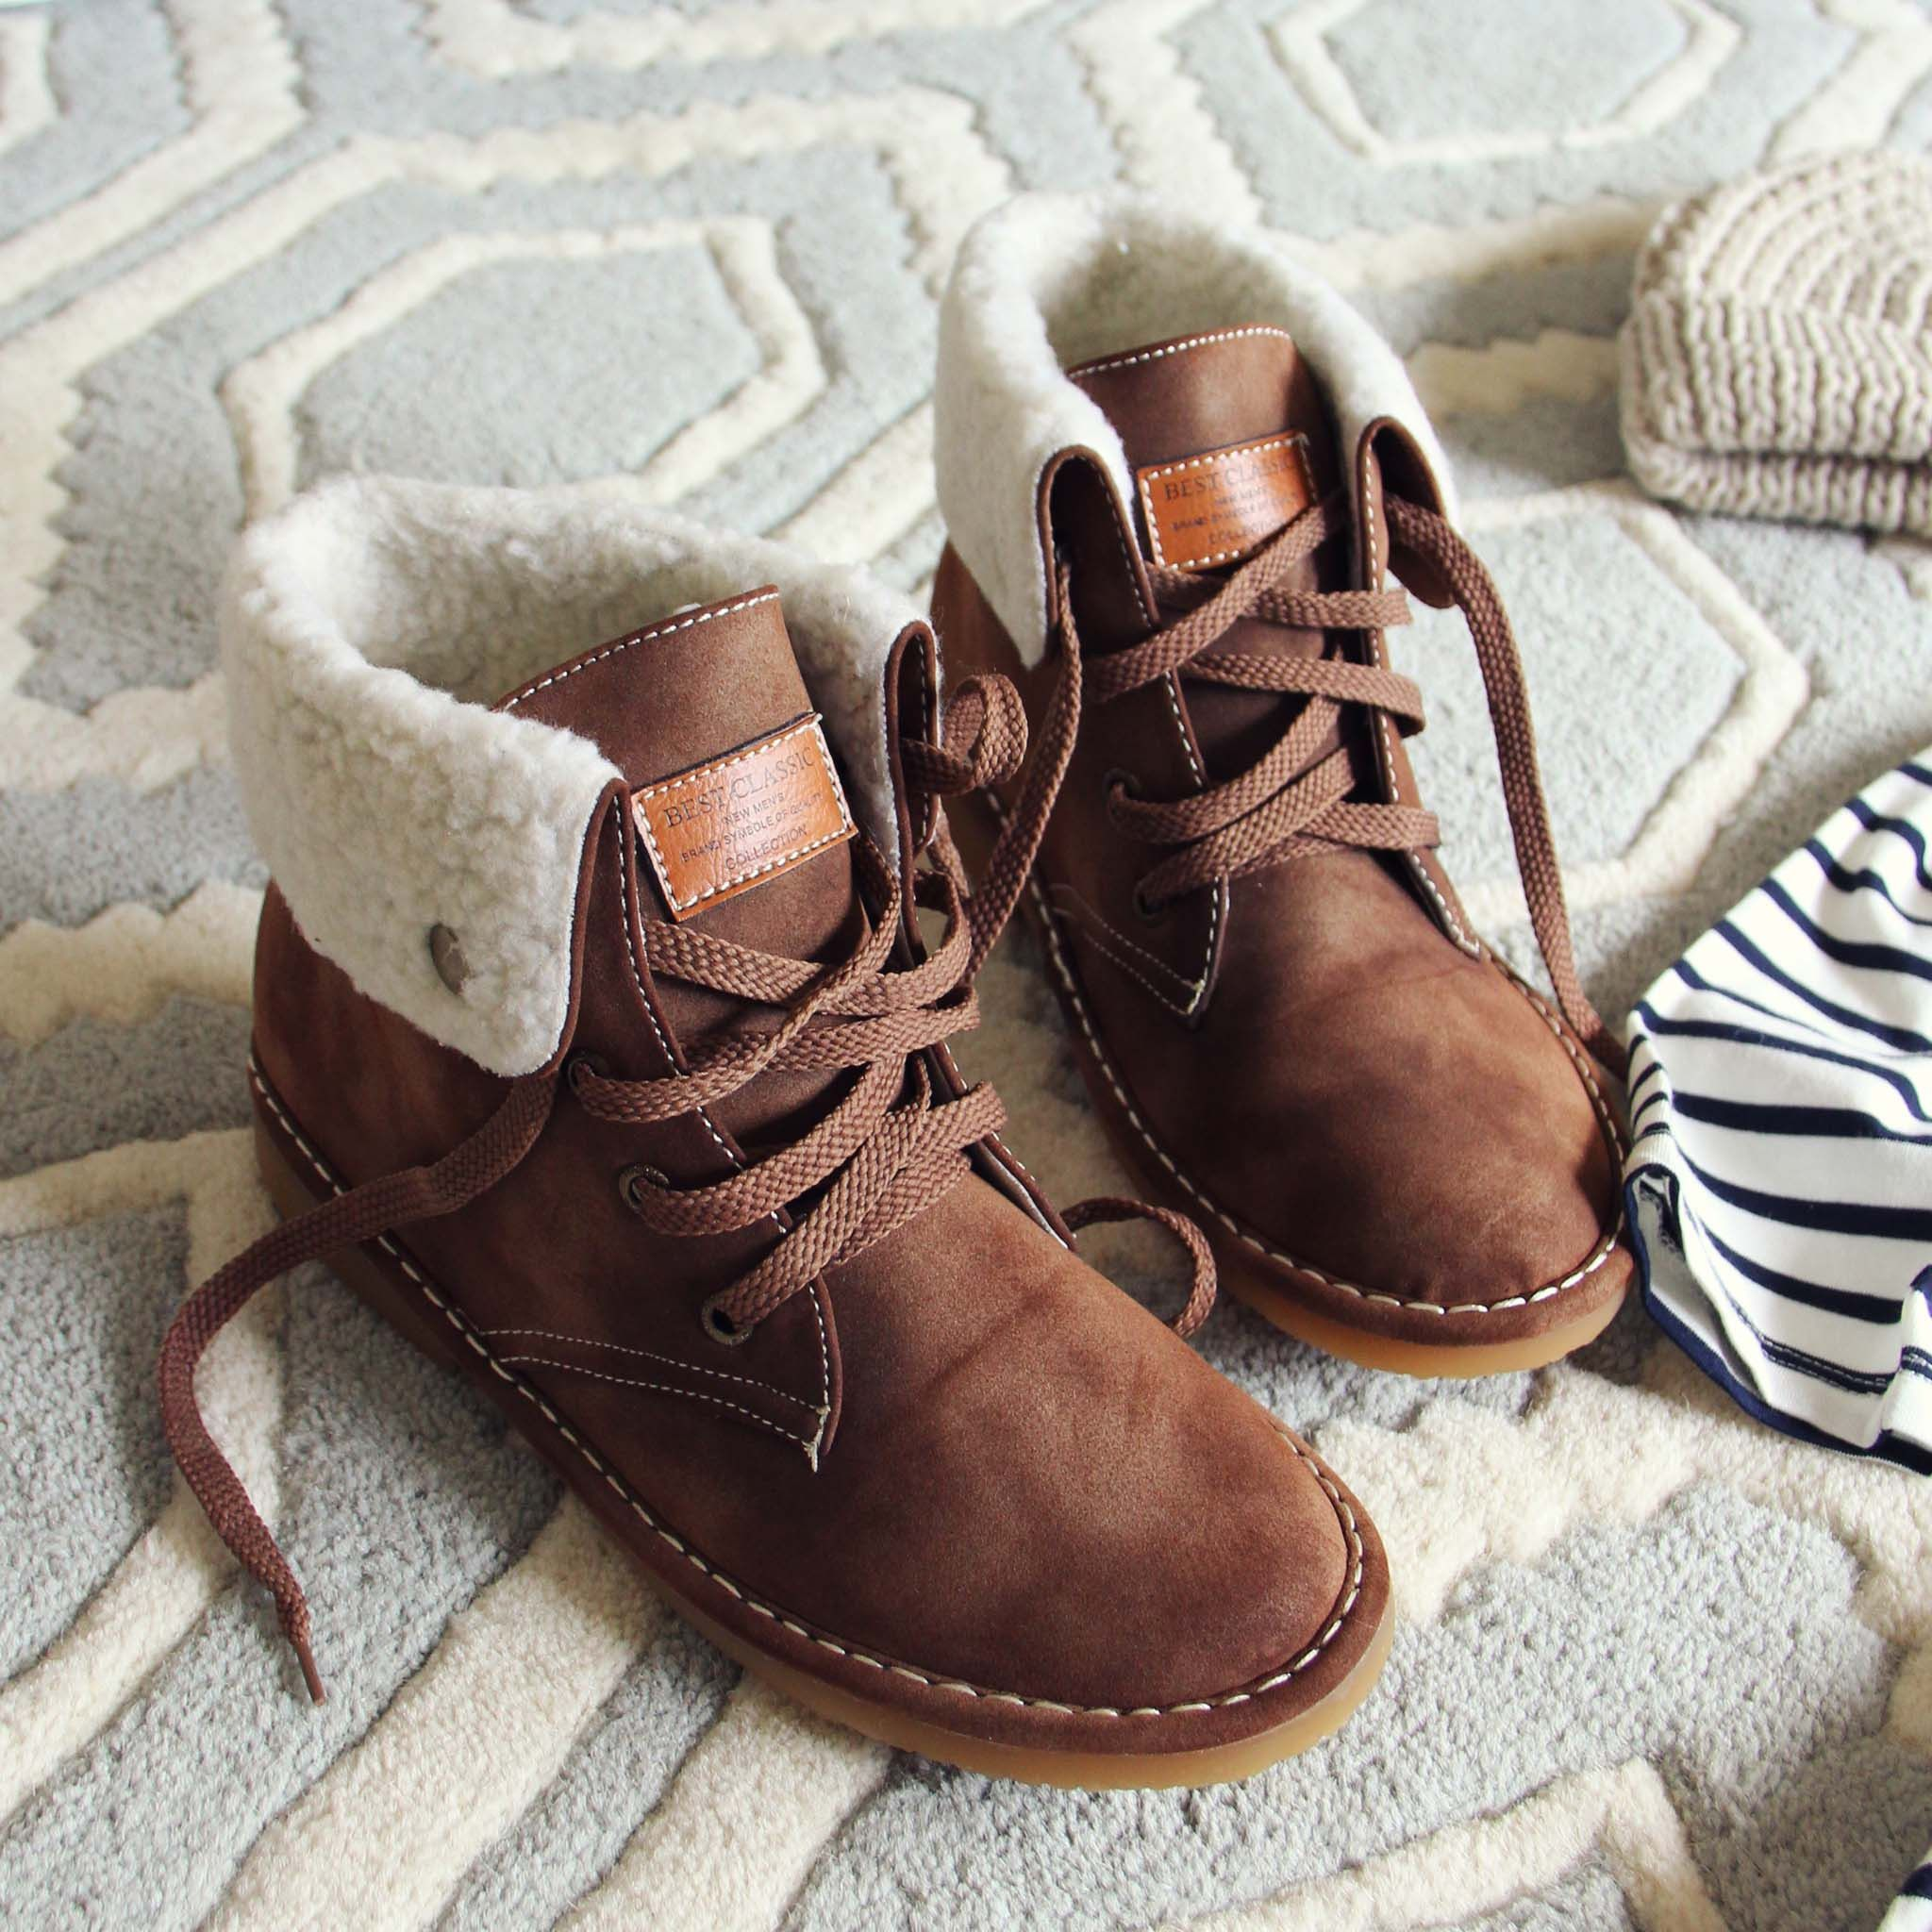 The Snowy River Booties Fashion Shoe Boots Shoes Ugg